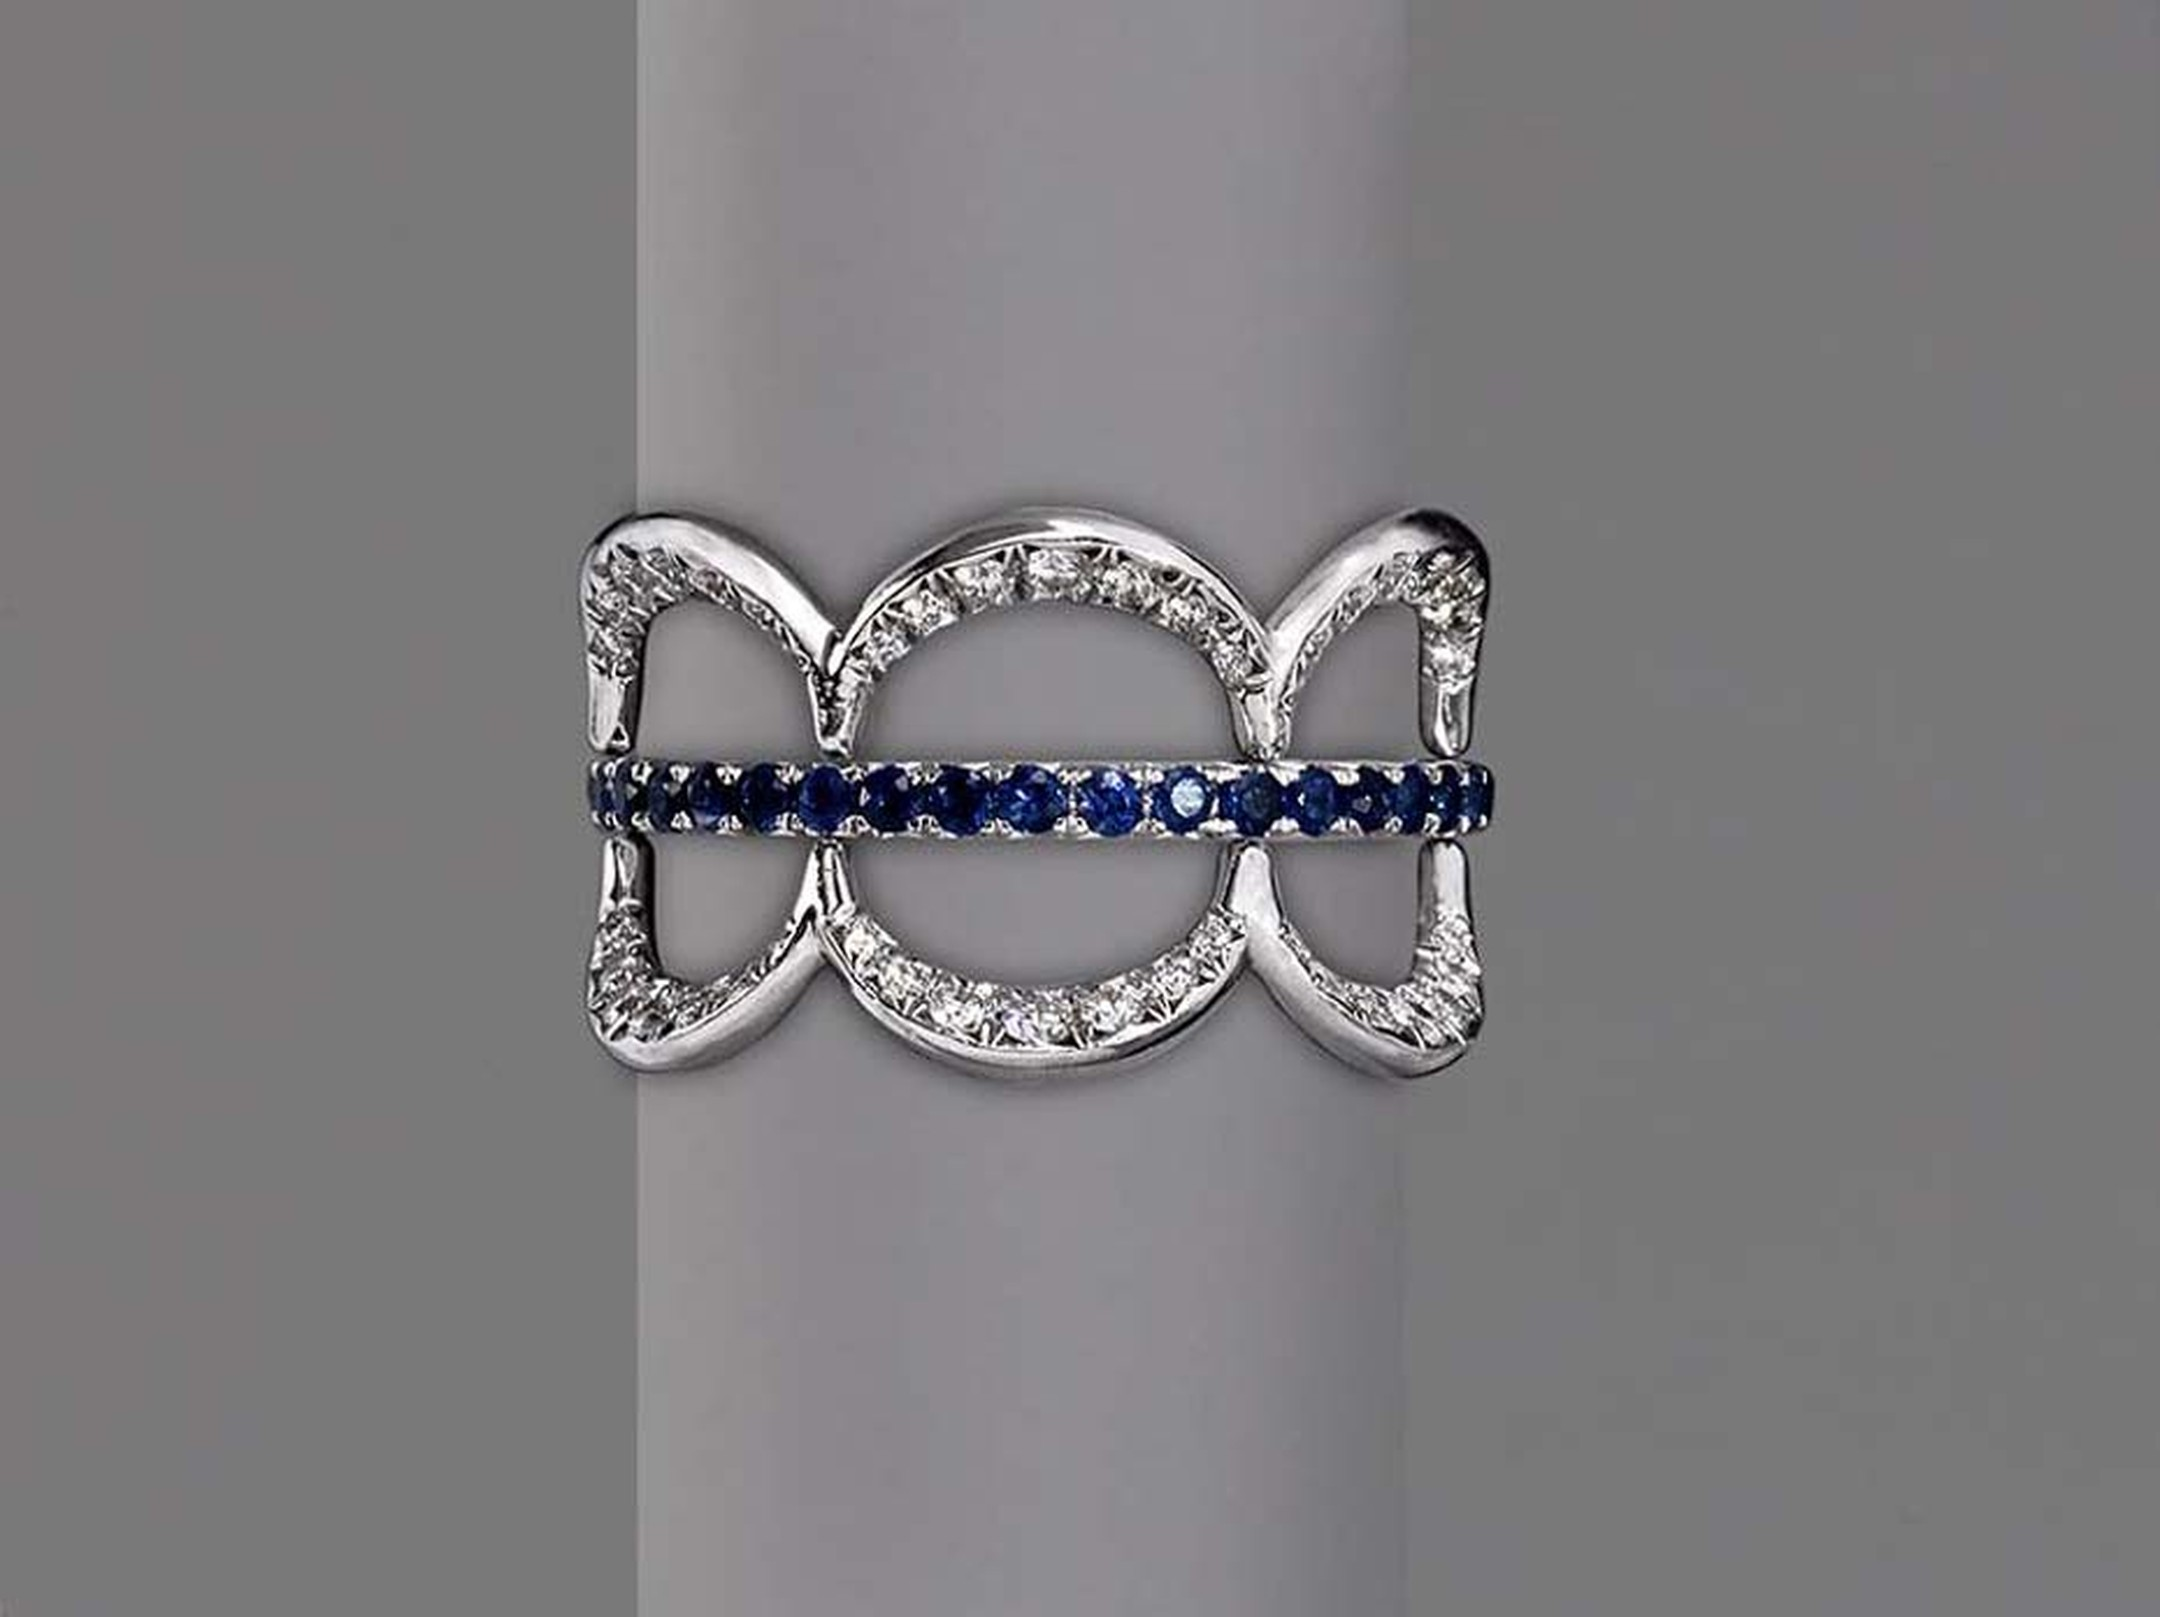 Jado Crown ring in white gold with diamonds and sapphires.